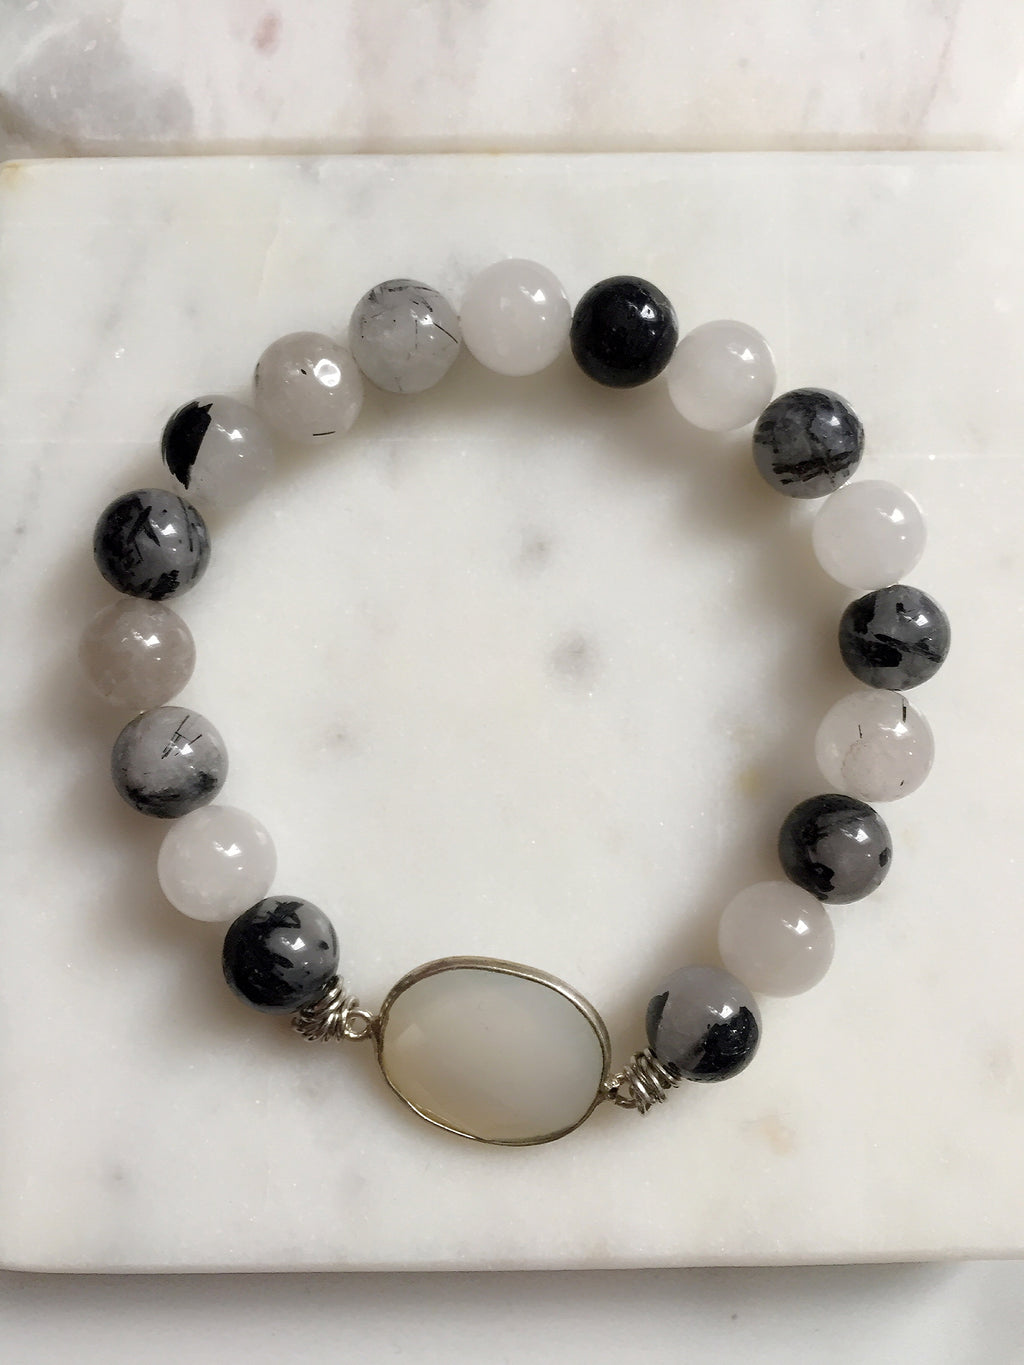 Rutiled Quartz + Moonstone Bracelet